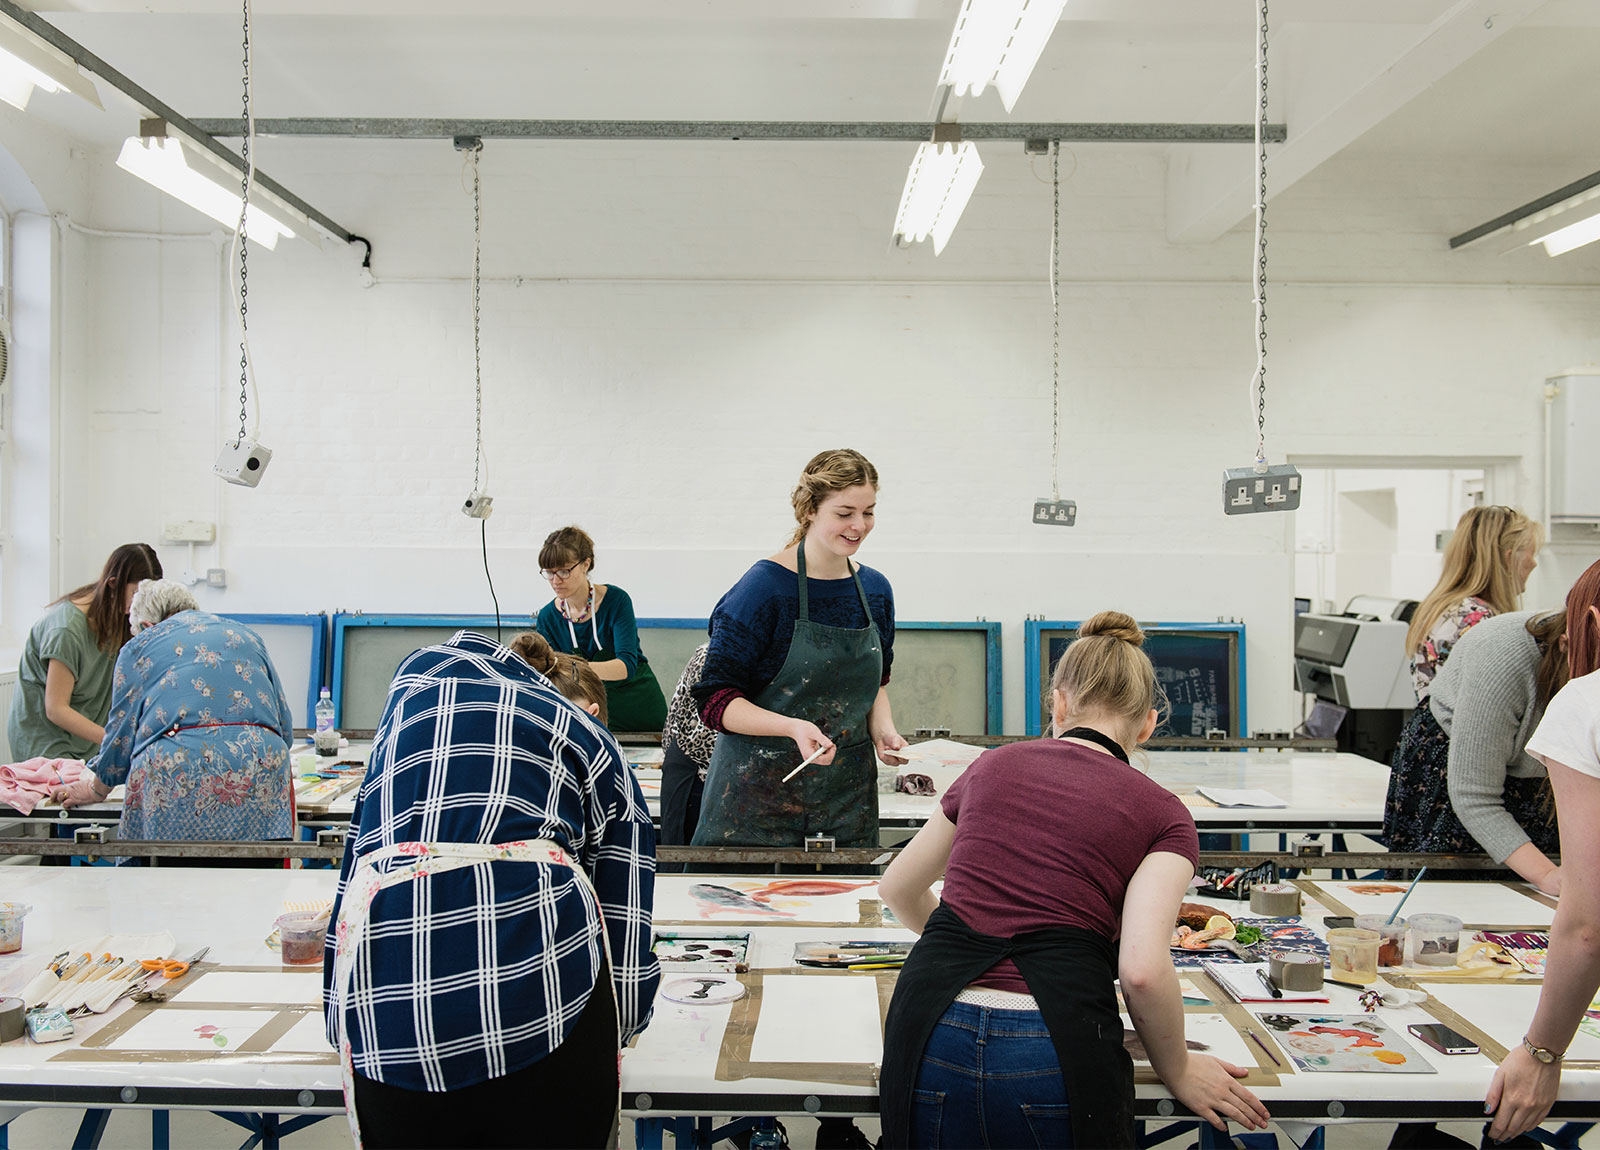 Textiles students at NUA